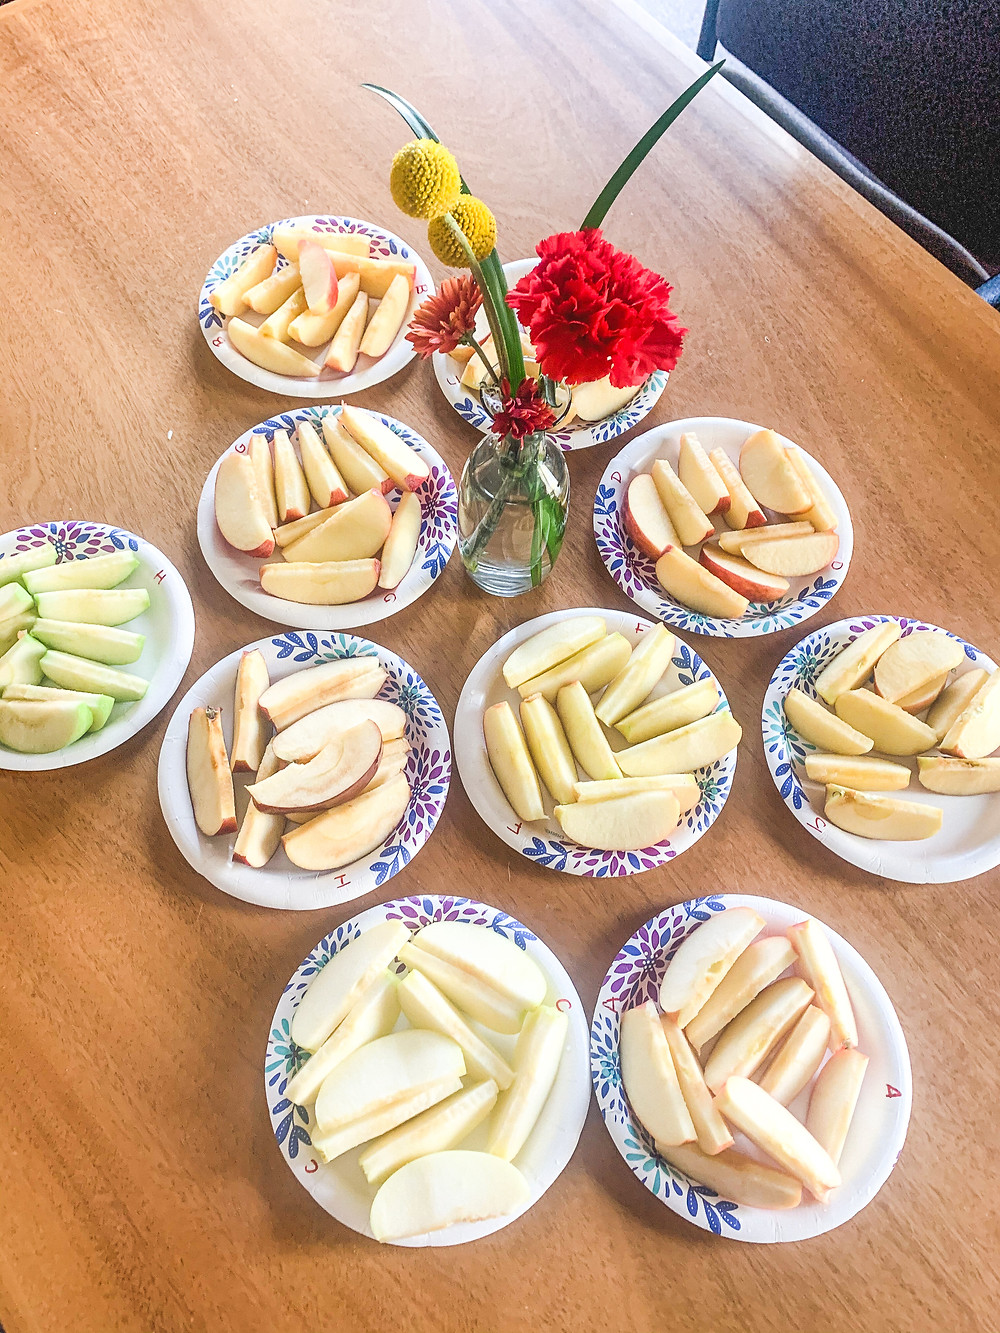 Ten plates with apple slices on them on top of a wooden table, a vase with red and yellow flowers in the middle of the table